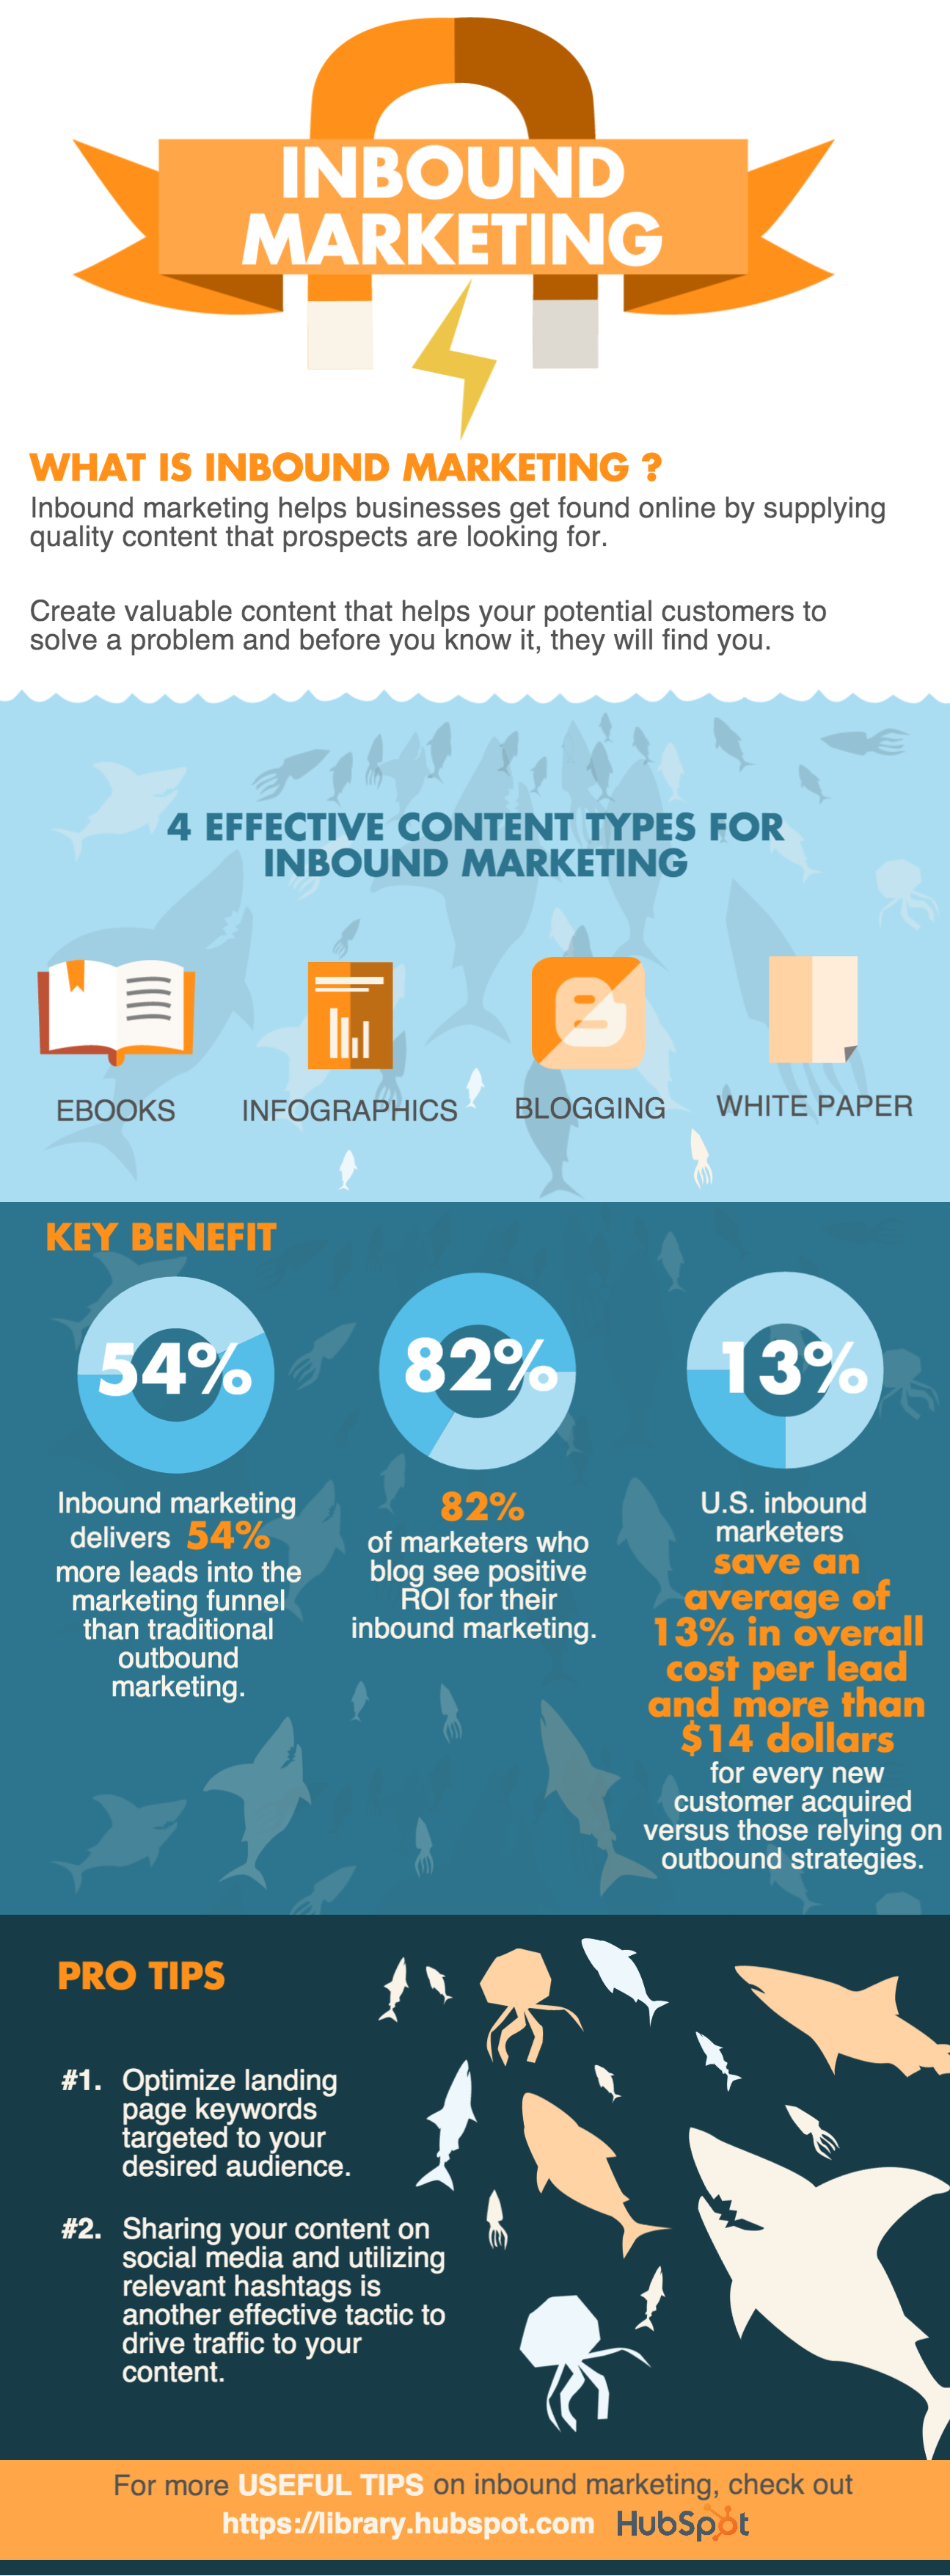 8-inbound-marketing-strategies-top-marketers-are-using-in-2016-INFOGRAPHIC